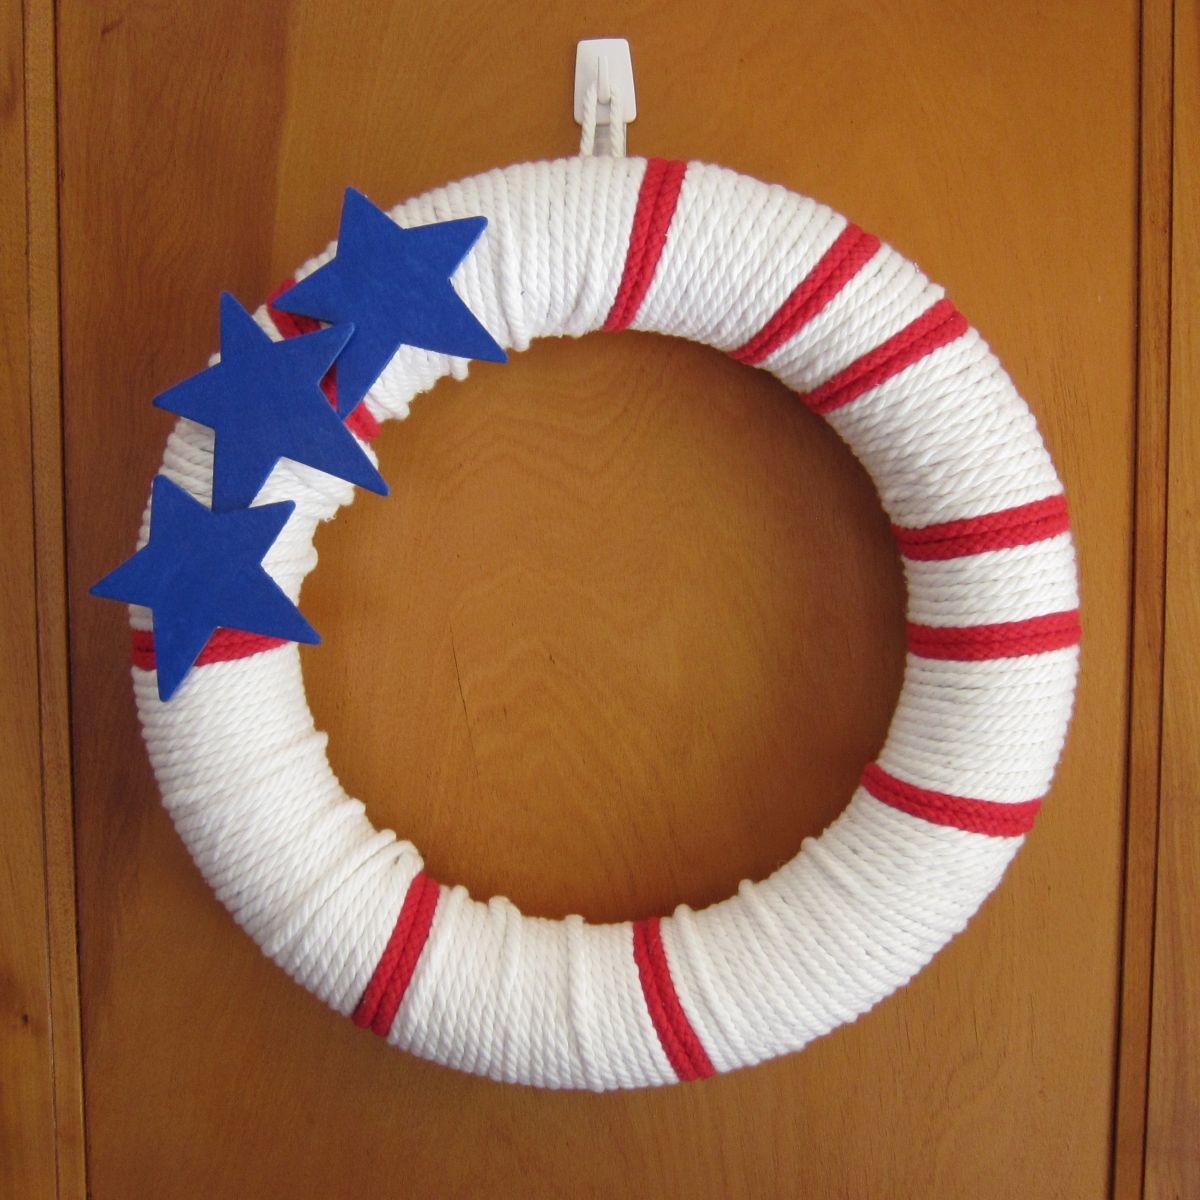 1561548147 655 cool 4th of july wreath ideas that would look perfect on your front door - Cool 4th of July Wreath Ideas That Would Look Perfect On Your Front Door